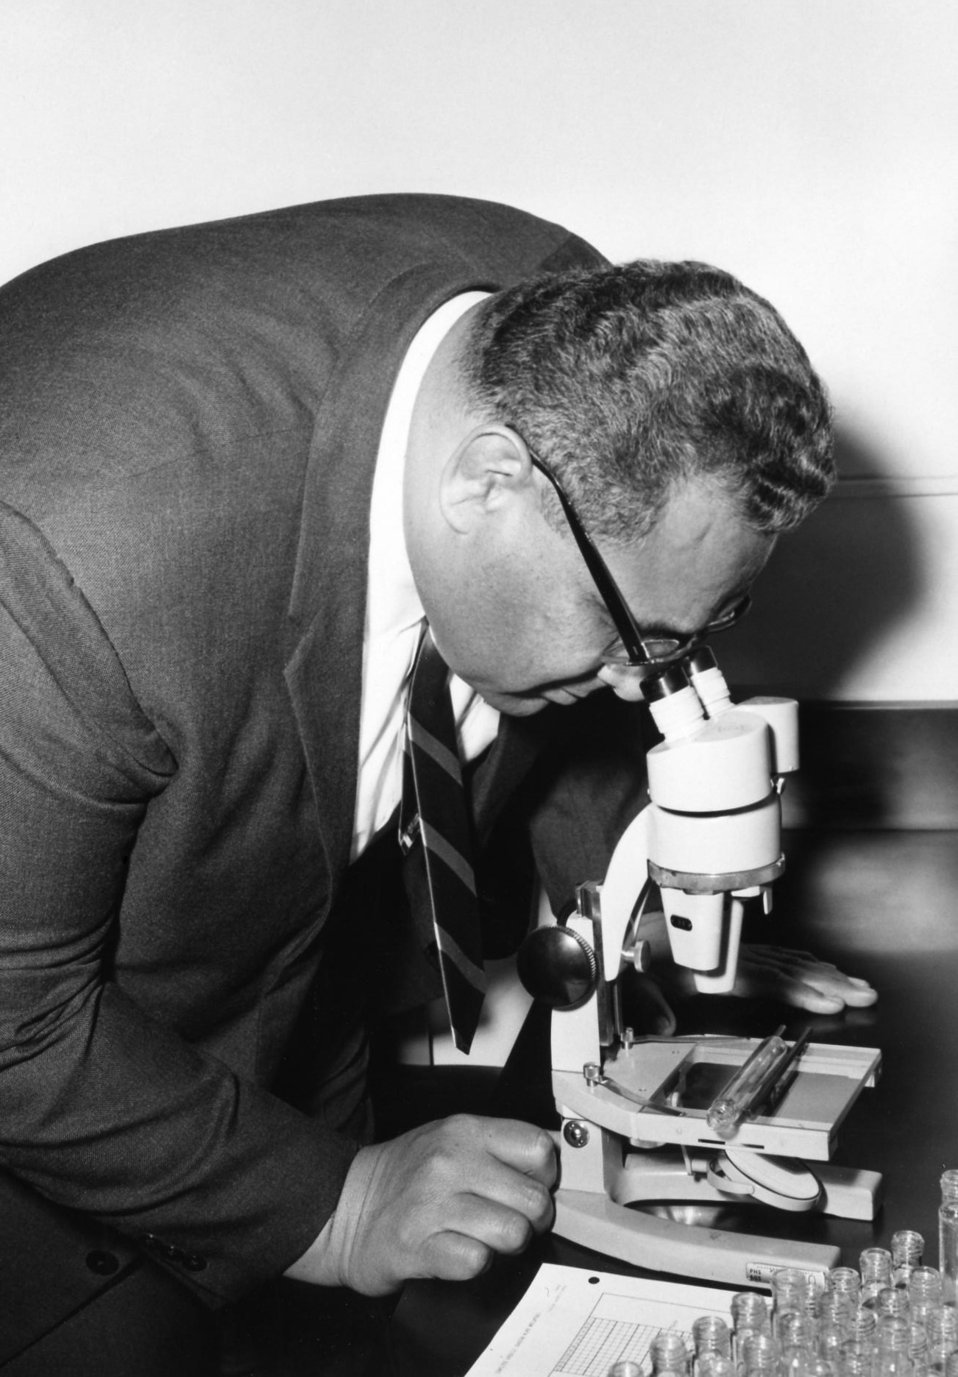 This 1967 photograph of Prince Tu'ipelehake of Tonga showed him looking into a microscope while on a tour of the Centers for Disease Control